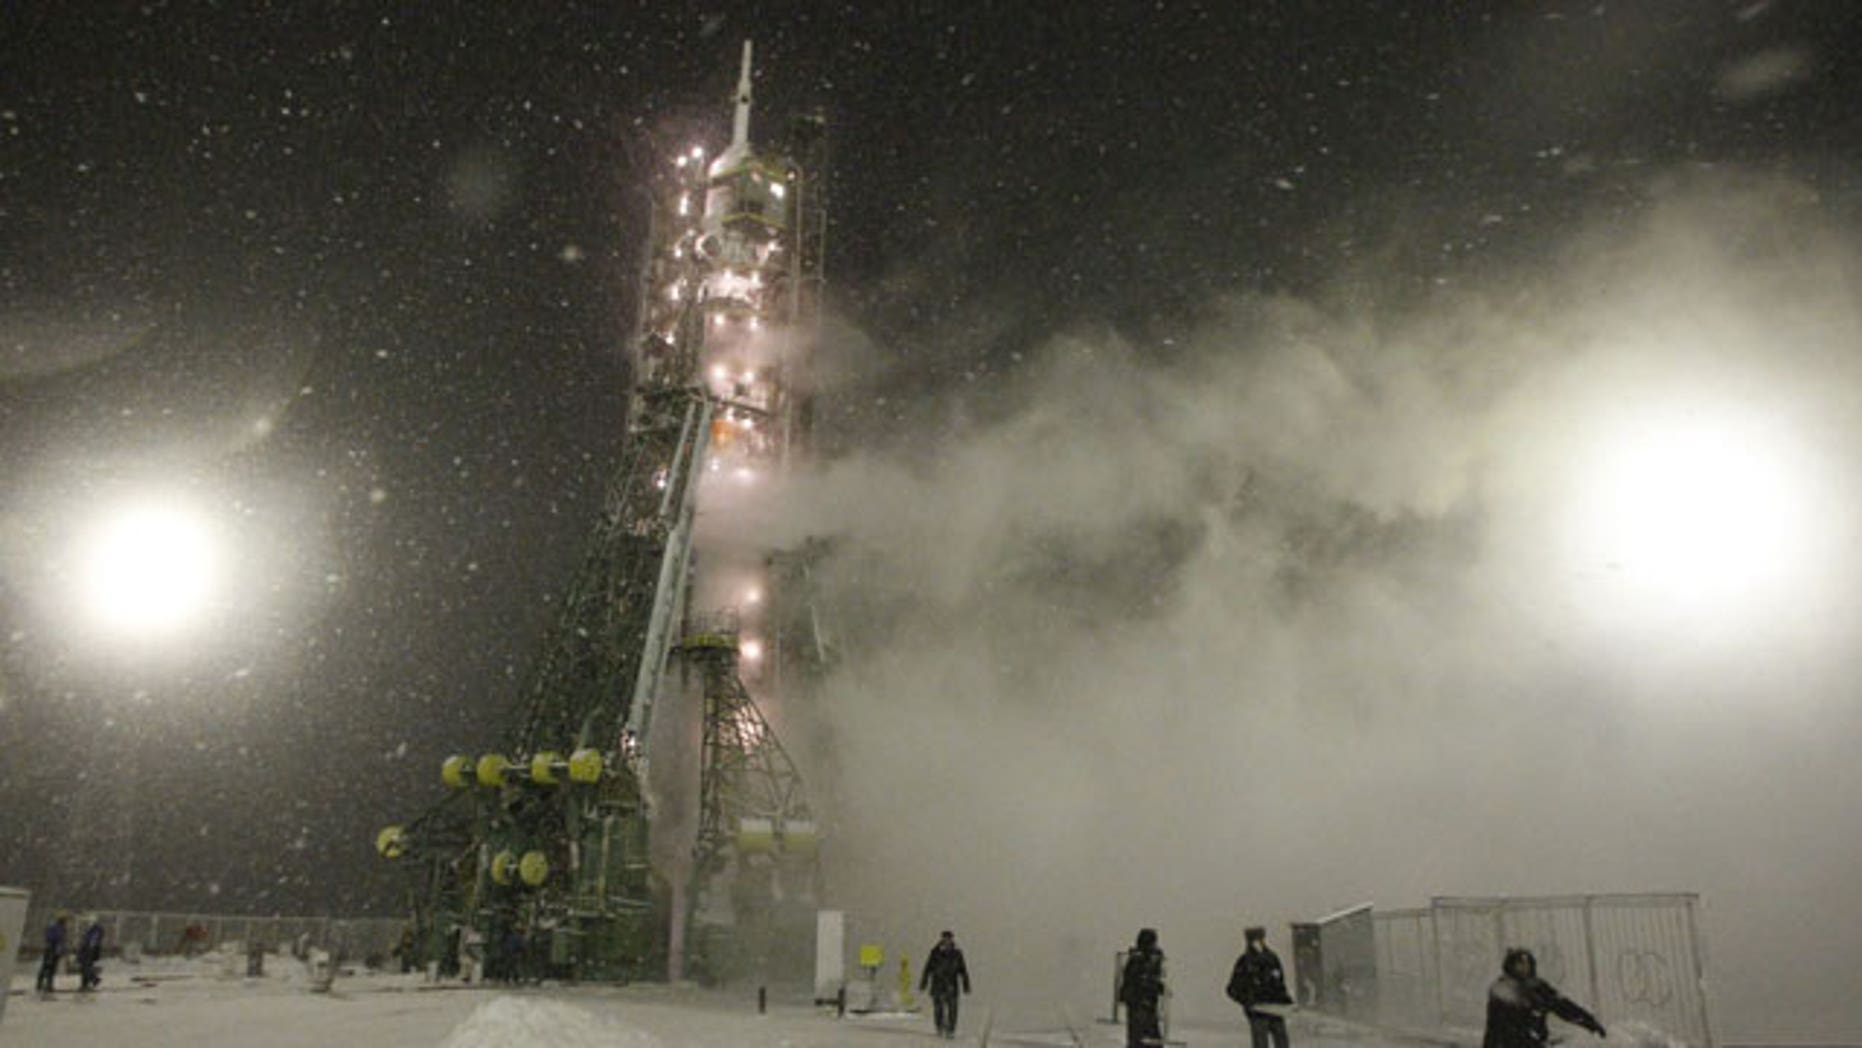 November 14, 2011: The Russian Soyuz TMA-22 space ship attached on the Soyuz-FG rocket booster is seen prior to the launch at the Russian leased Baikonur Cosmodrome in Kazakhstan.